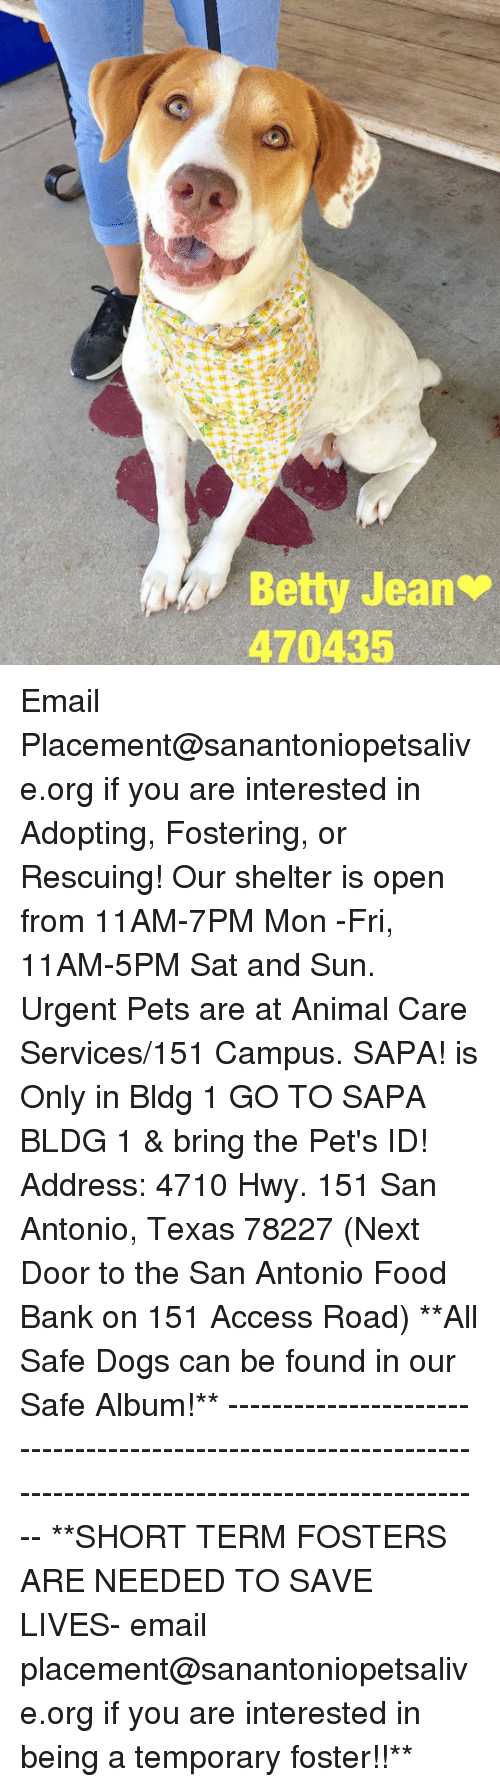 Dogs, Food, and Memes: Betty Jean  470435 Email Placement@sanantoniopetsalive.org if you are interested in Adopting, Fostering, or Rescuing!  Our shelter is open from 11AM-7PM Mon -Fri, 11AM-5PM Sat and Sun.  Urgent Pets are at Animal Care Services/151 Campus. SAPA! is Only in Bldg 1 GO TO SAPA BLDG 1 & bring the Pet's ID! Address: 4710 Hwy. 151 San Antonio, Texas 78227 (Next Door to the San Antonio Food Bank on 151 Access Road)  **All Safe Dogs can be found in our Safe Album!** ---------------------------------------------------------------------------------------------------------- **SHORT TERM FOSTERS ARE NEEDED TO SAVE LIVES- email placement@sanantoniopetsalive.org if you are interested in being a temporary foster!!**